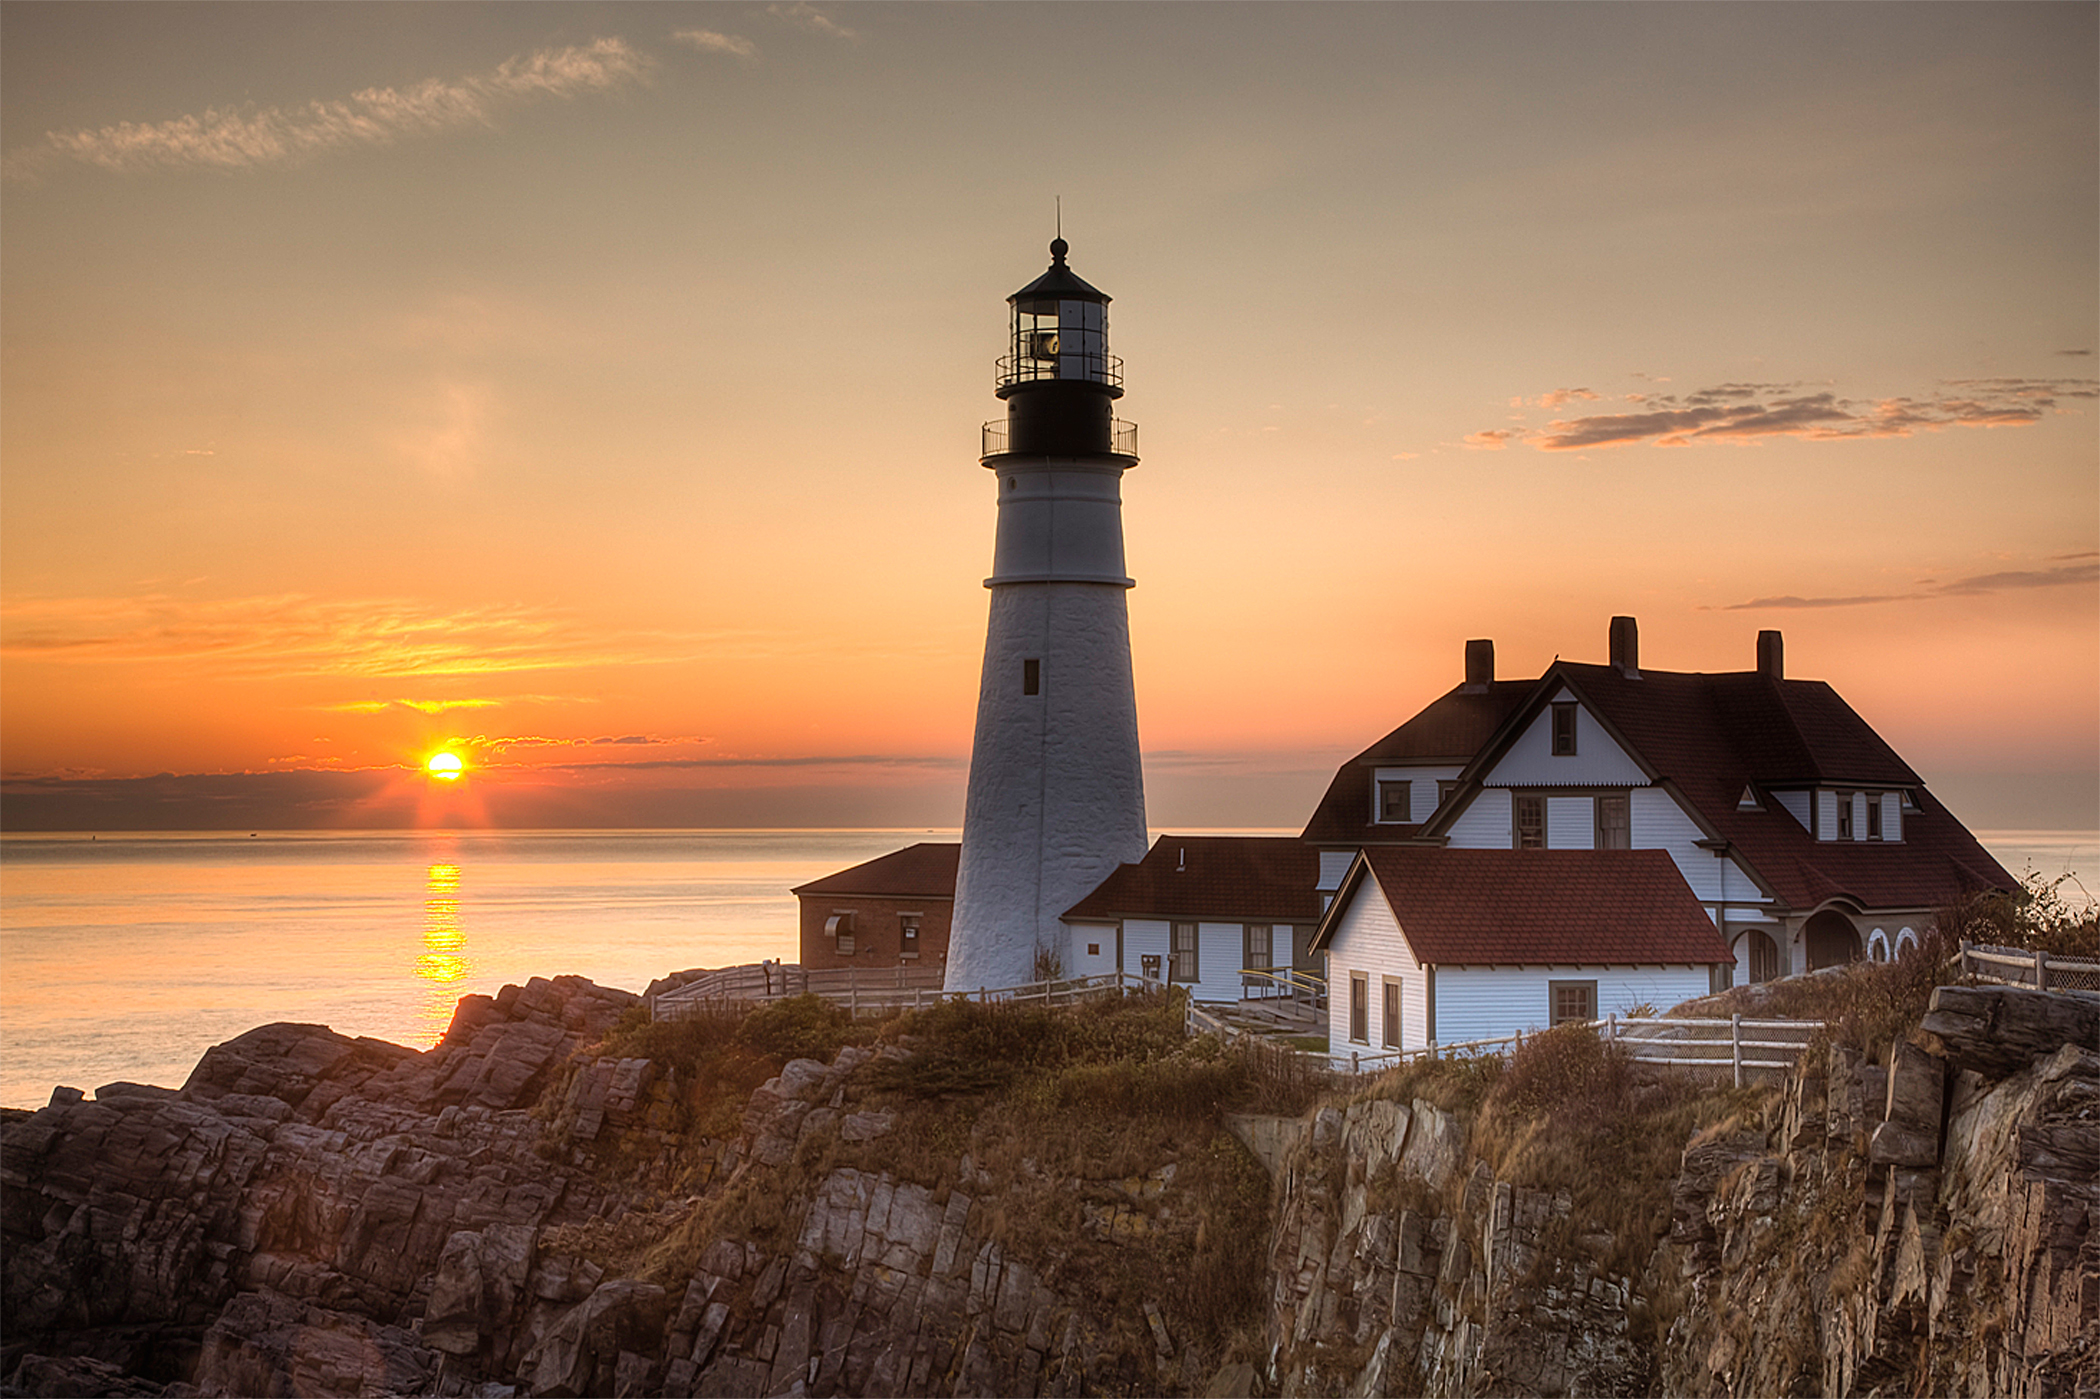 The first rays of sun after sunrise reach the Portland Head Light, built in 1791, which protects mariners entering Casco Bay. The lighthouse is located in Fort Williams Park, Cape Elizabeth, Maine, USA.